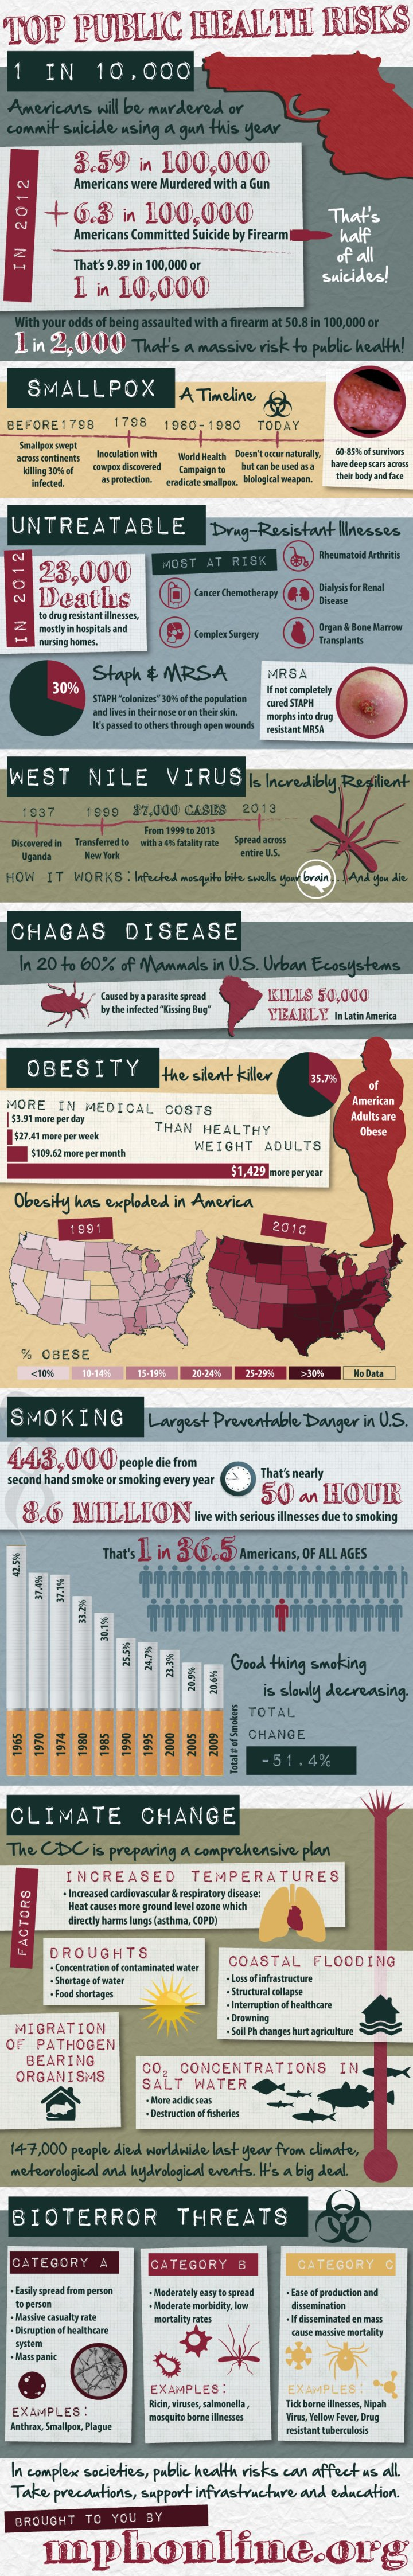 Top public health risks